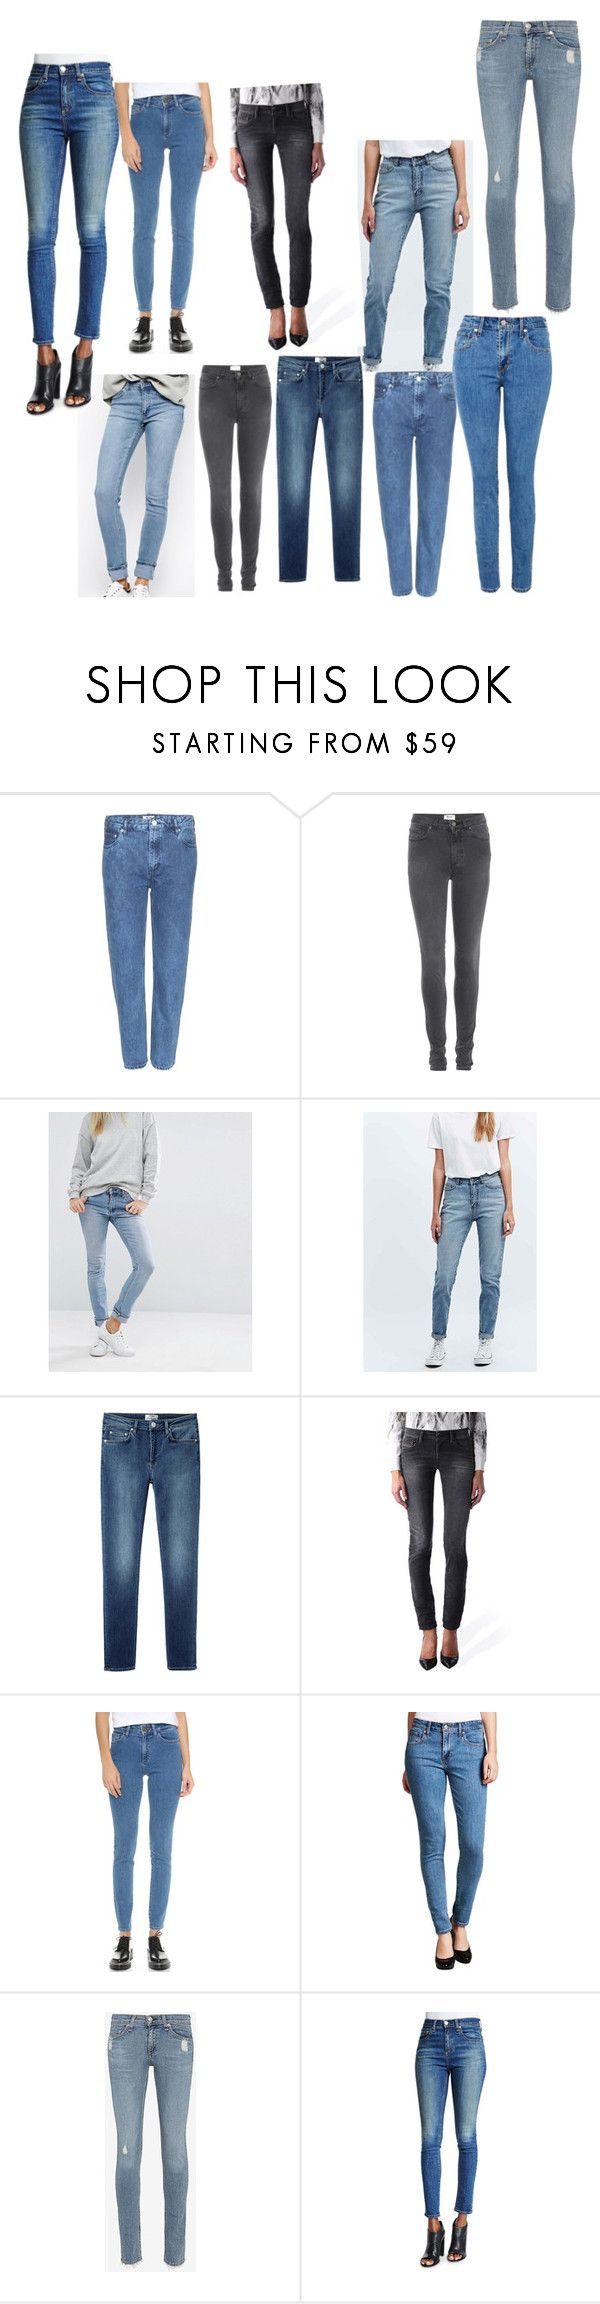 """""""jeans"""" by smartmuffin ❤ liked on Polyvore featuring Acne Studios, Cheap Monday, Diesel, DL1961 Premium Denim, Levi's, rag & bone and rag & bone/JEAN"""